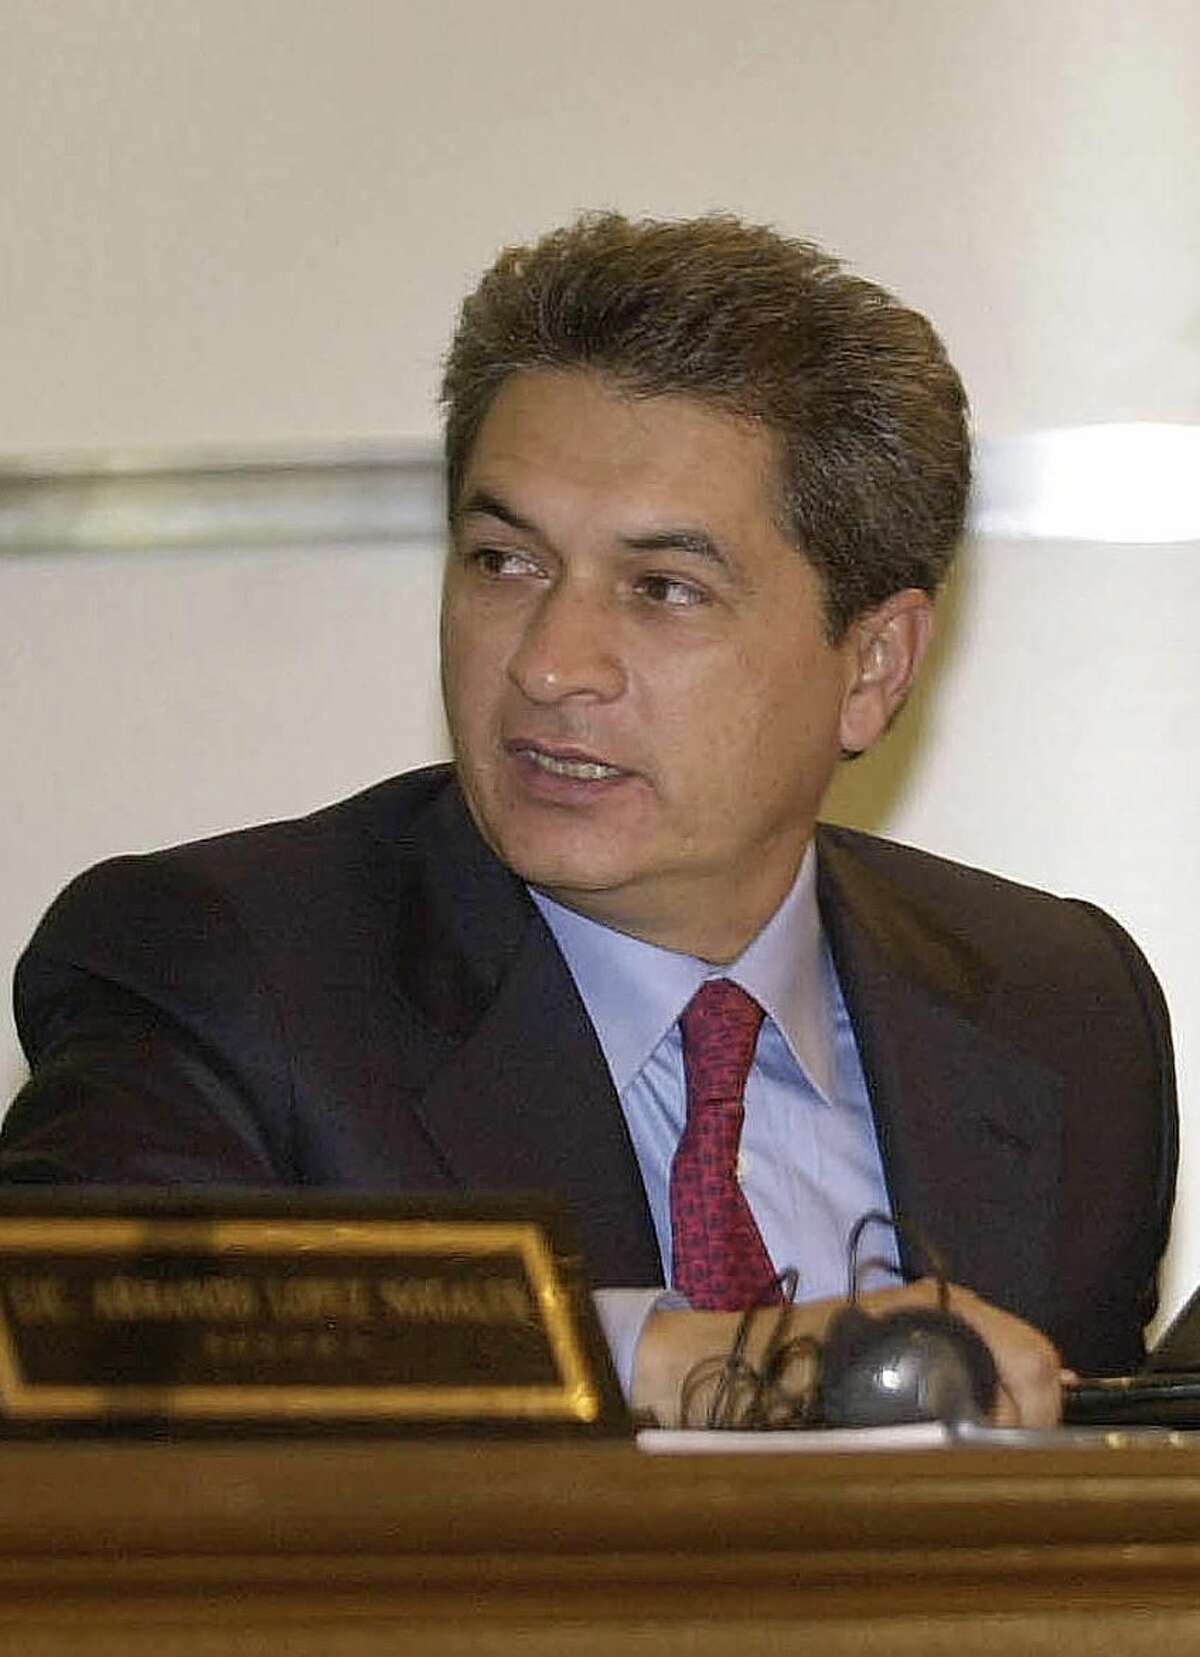 """In this Friday, Aug. 8, 2003 photo, former Tamaulipas state Governor Tomas Yarrington participates in the XXIth Border Governors Conference in Chihuahua, Mexico. On Wednesday, Aug. 29, 2012, Mexico's Attorney General requested help from Interpol in arresting Yarrington after a judge ordered his arrest for allegedly fomenting drug trafficking. U.S. authorities allege that Yarrington """"acquired millions of dollars in payments"""" while in public office from drug cartels """"and from various extortion or bribery schemes."""" (AP Photo/Jaime Puebla, File)"""